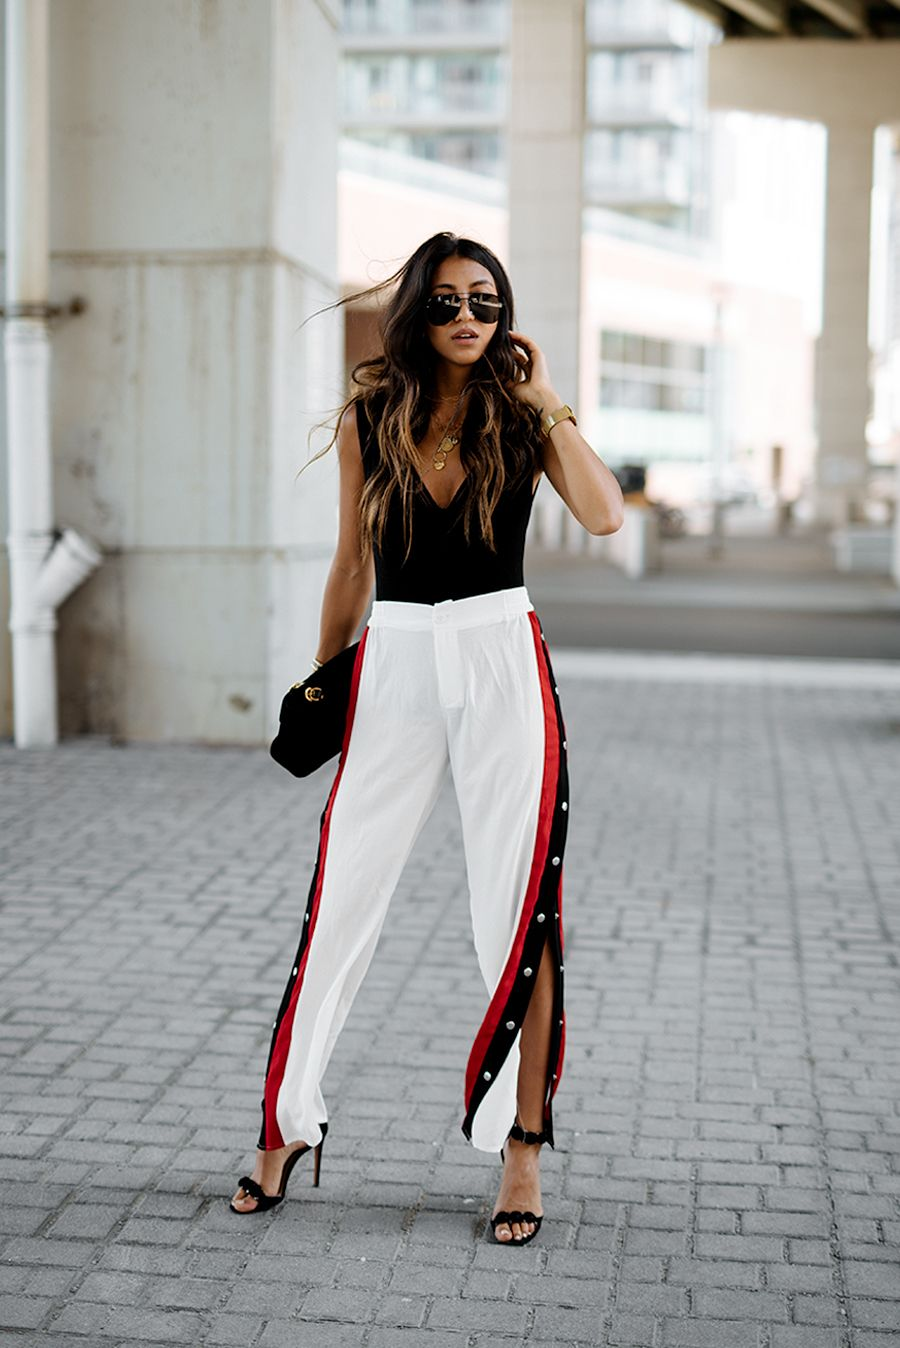 Trend Focus The Tearaway Pant & Trend Focus: The Tearaway Pant (Not Your Standard) | Pinterest ...